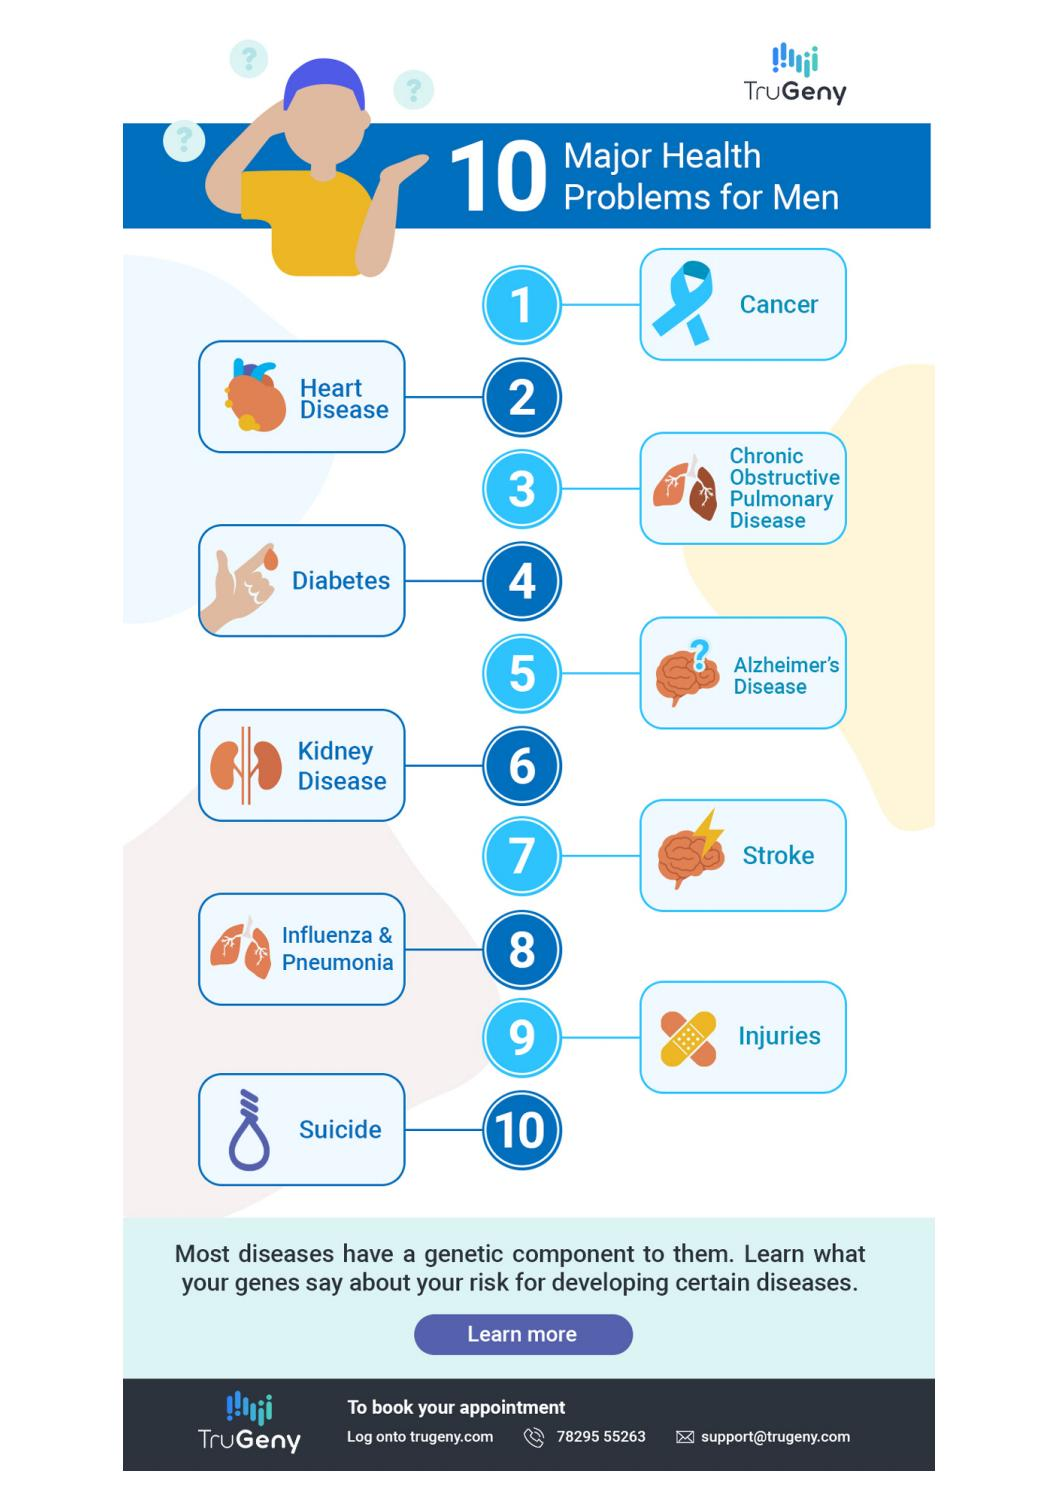 10 Major Health Problems for Men by trugenybangalore - Issuu